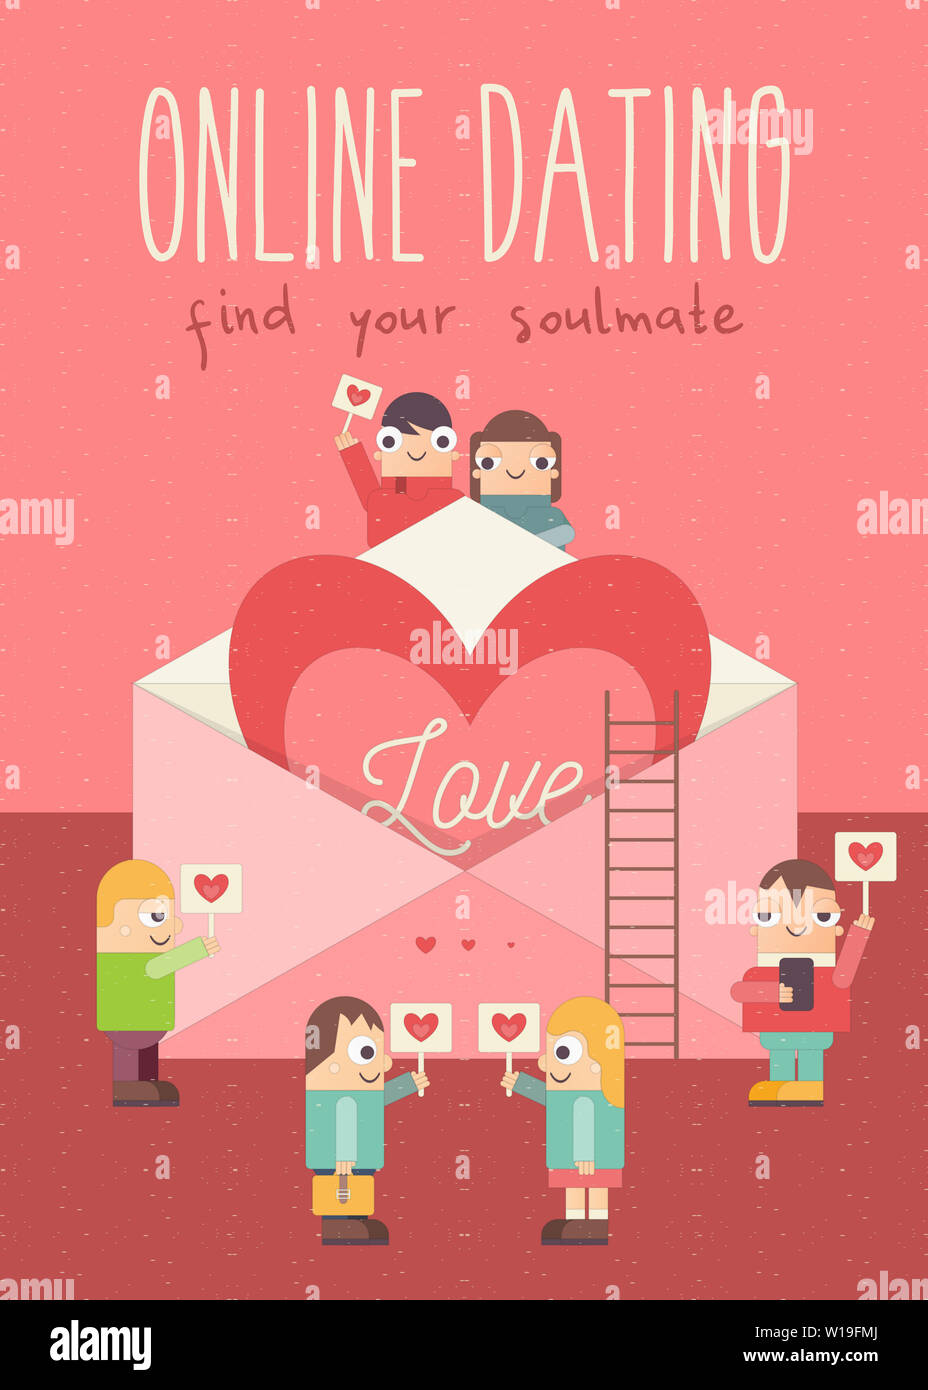 https www alamy com online dating poster cute cartoon people with hearts idea of internet or remote relationship wedding love big heart in envelope vector illustrat image258980082 html